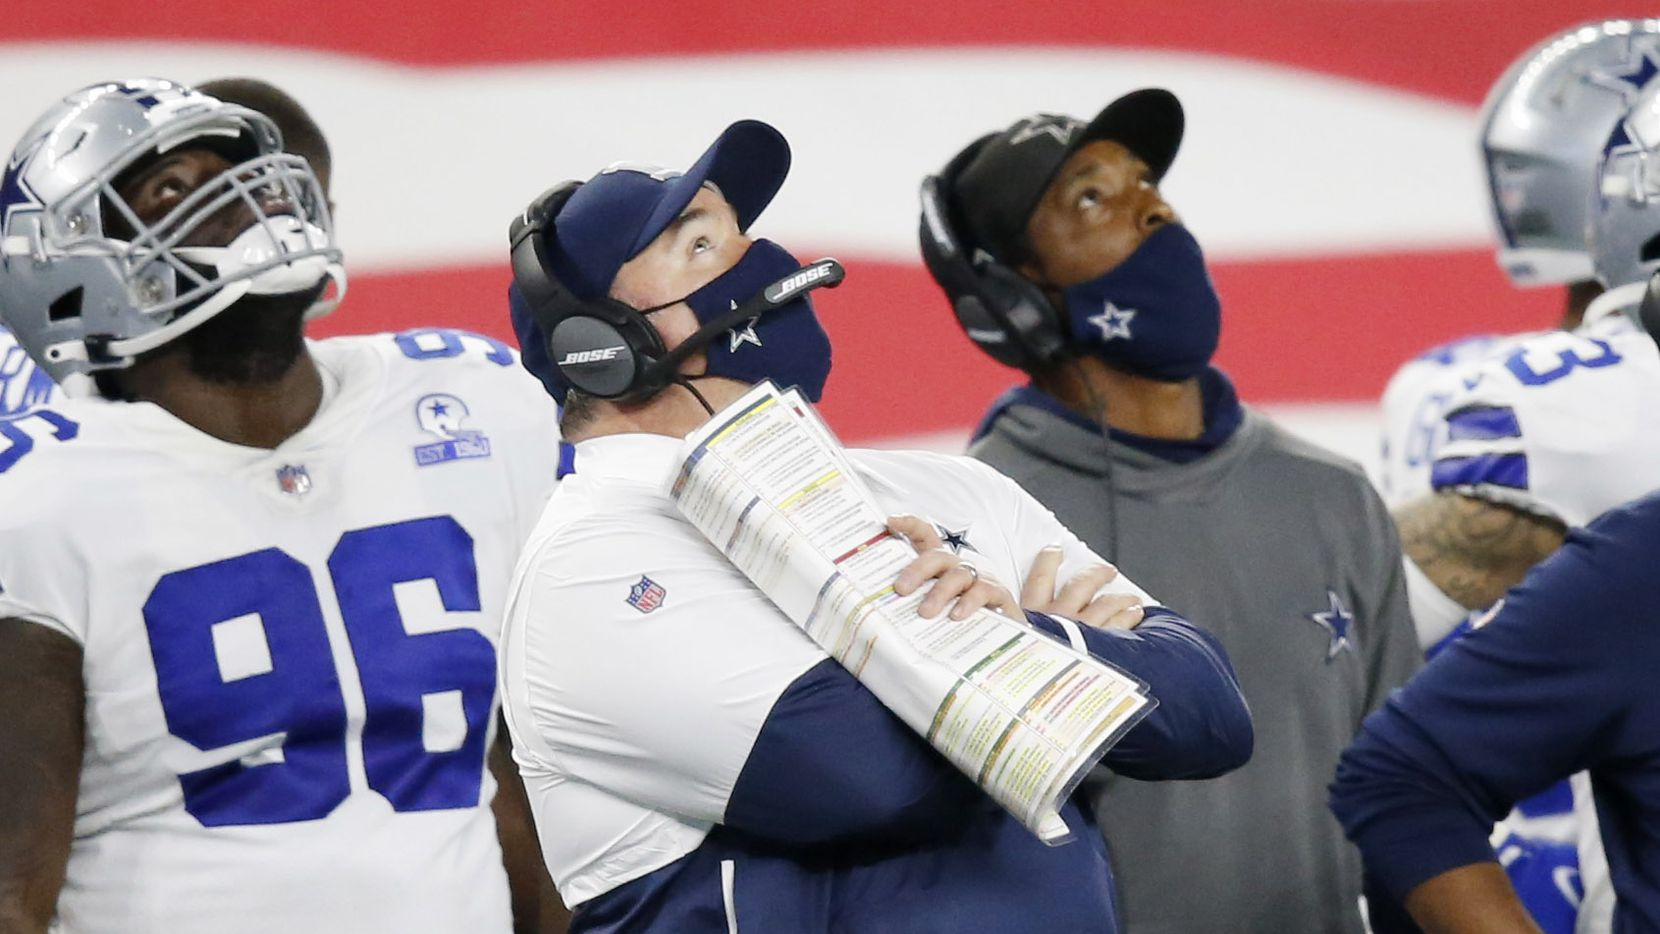 Dallas Cowboys head coach Mike McCarthy looks at the replay in a game against the Arizona Cardinals during the third quarter of play at AT&T Stadium on Monday, October 19, 2020 in Arlington, Texas.